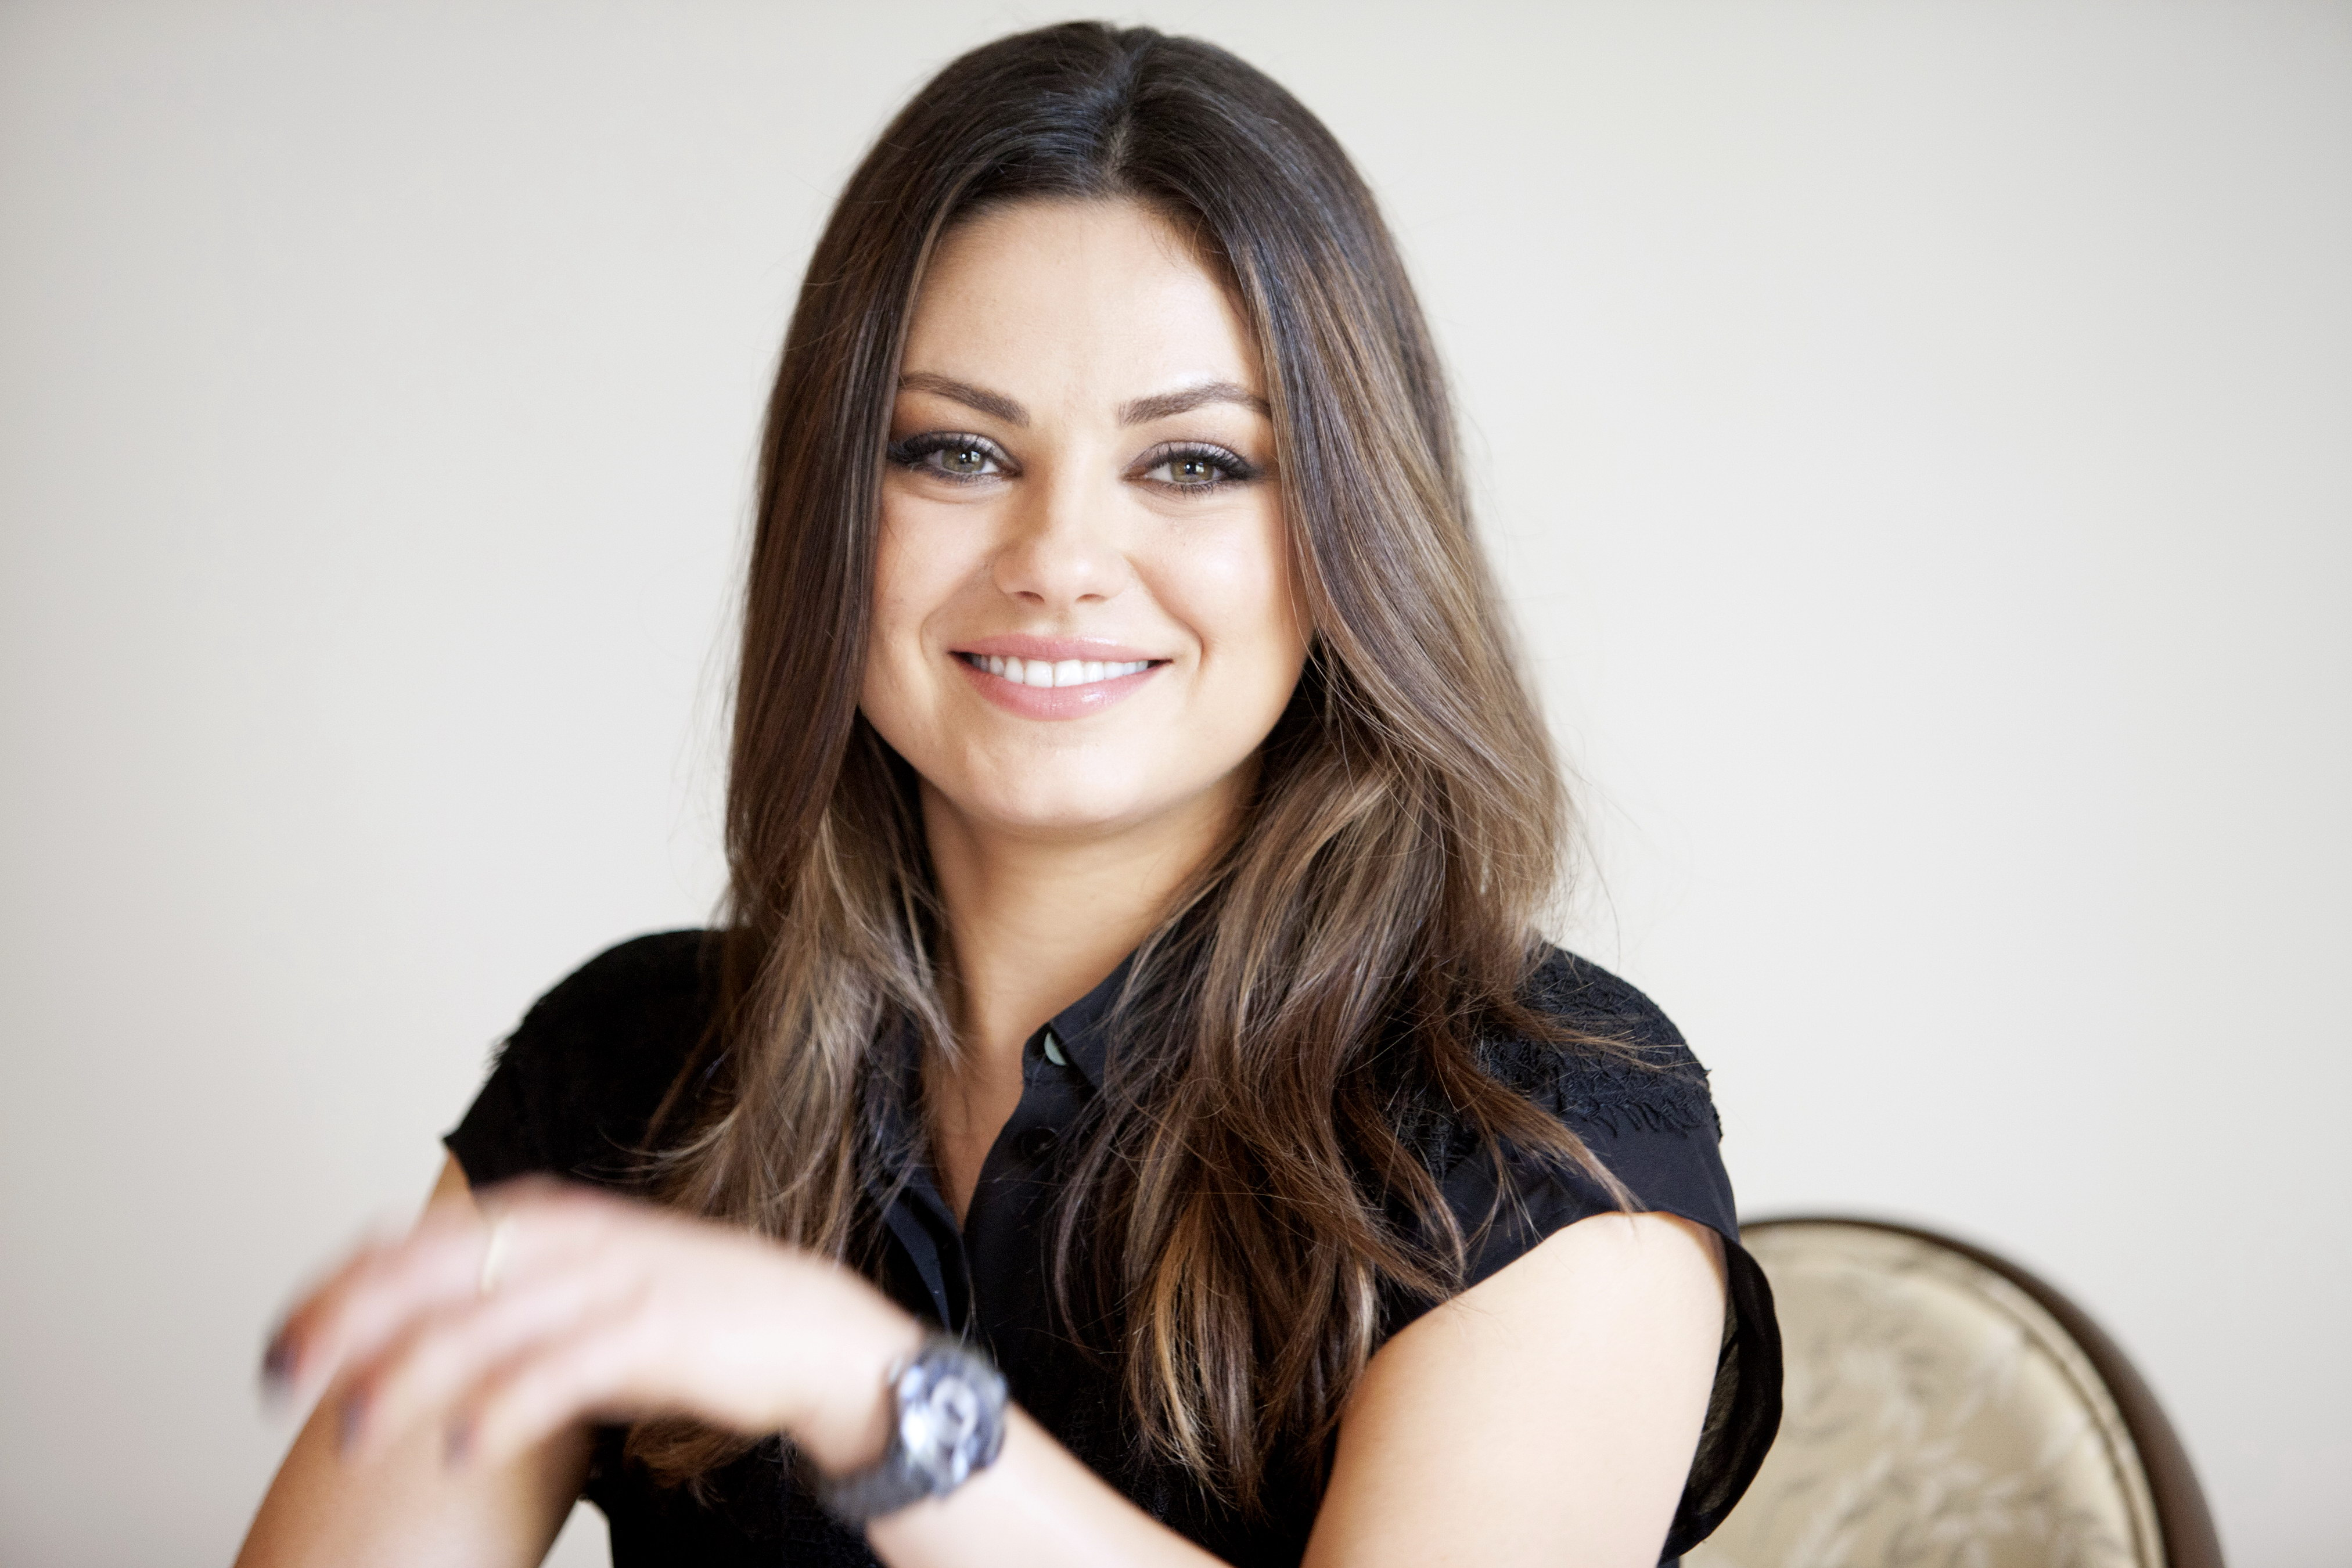 Mila kunis wallpapers pictures images - Mila kunis 4k ...